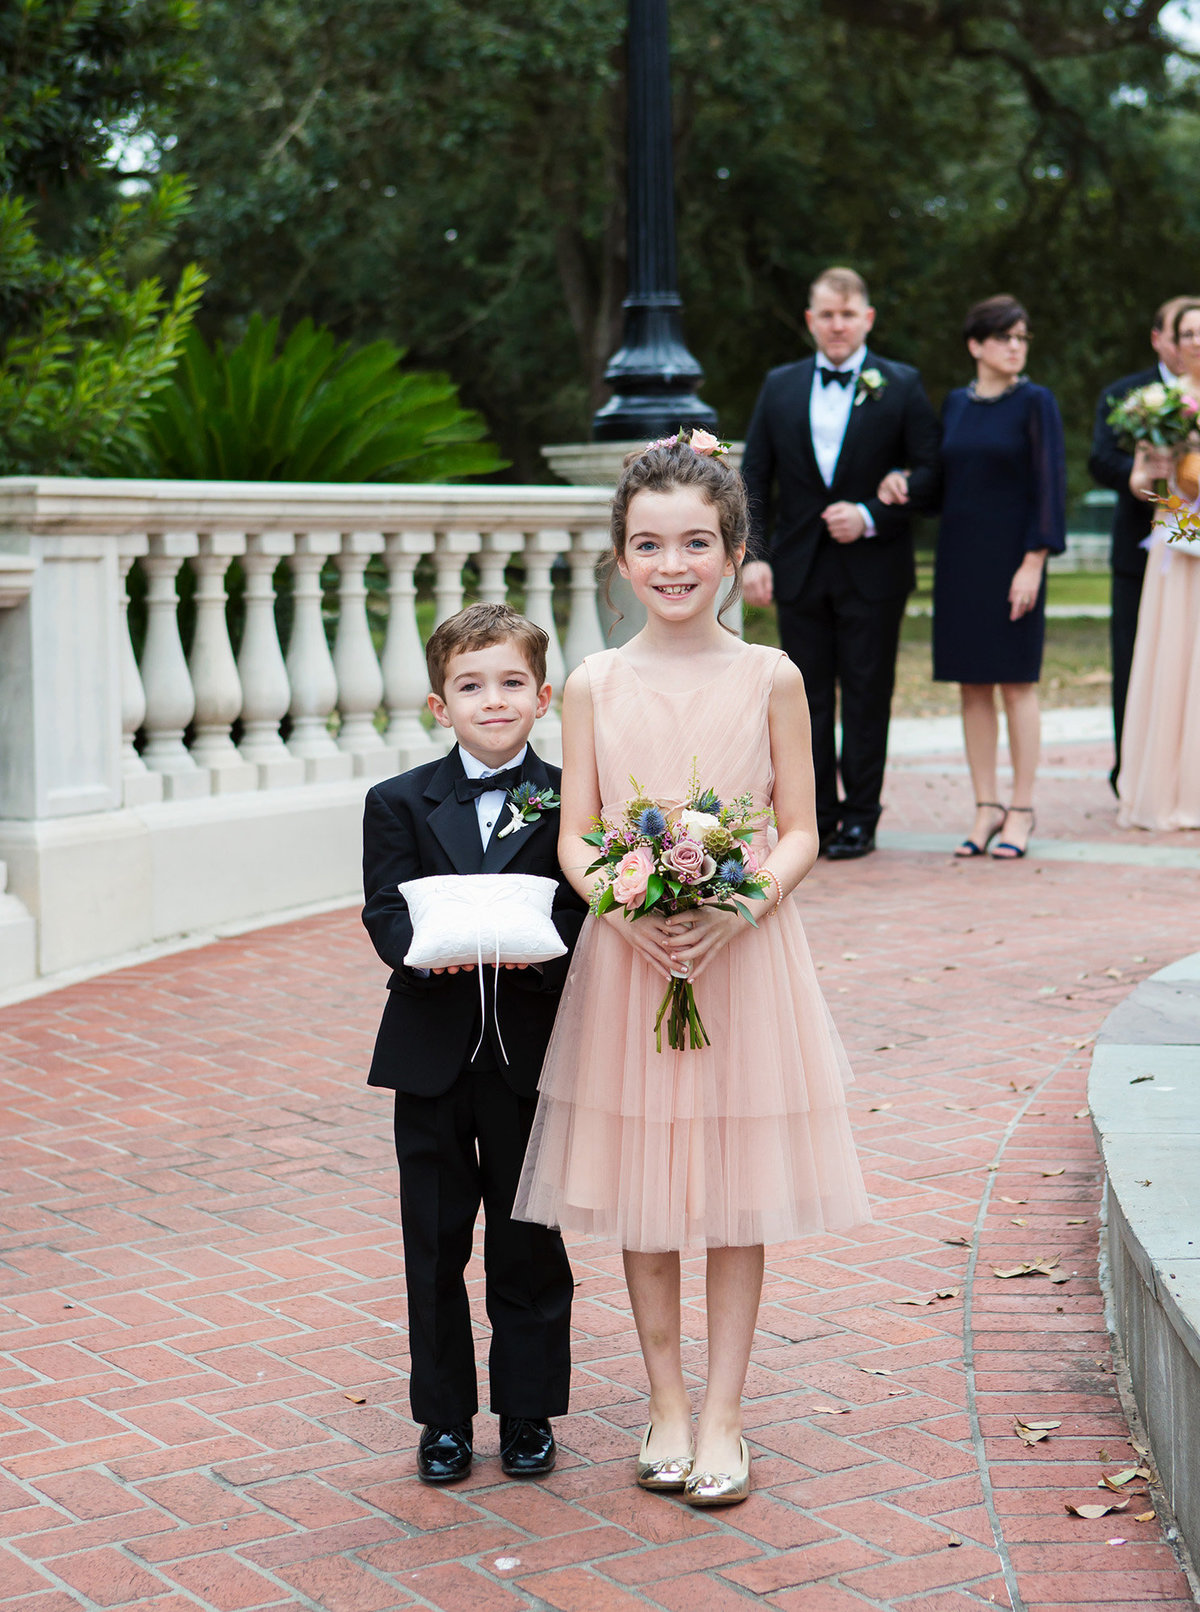 NOLA flower girl and ring bearer walking down cement pathway for wedding ceremony in Audubon Park